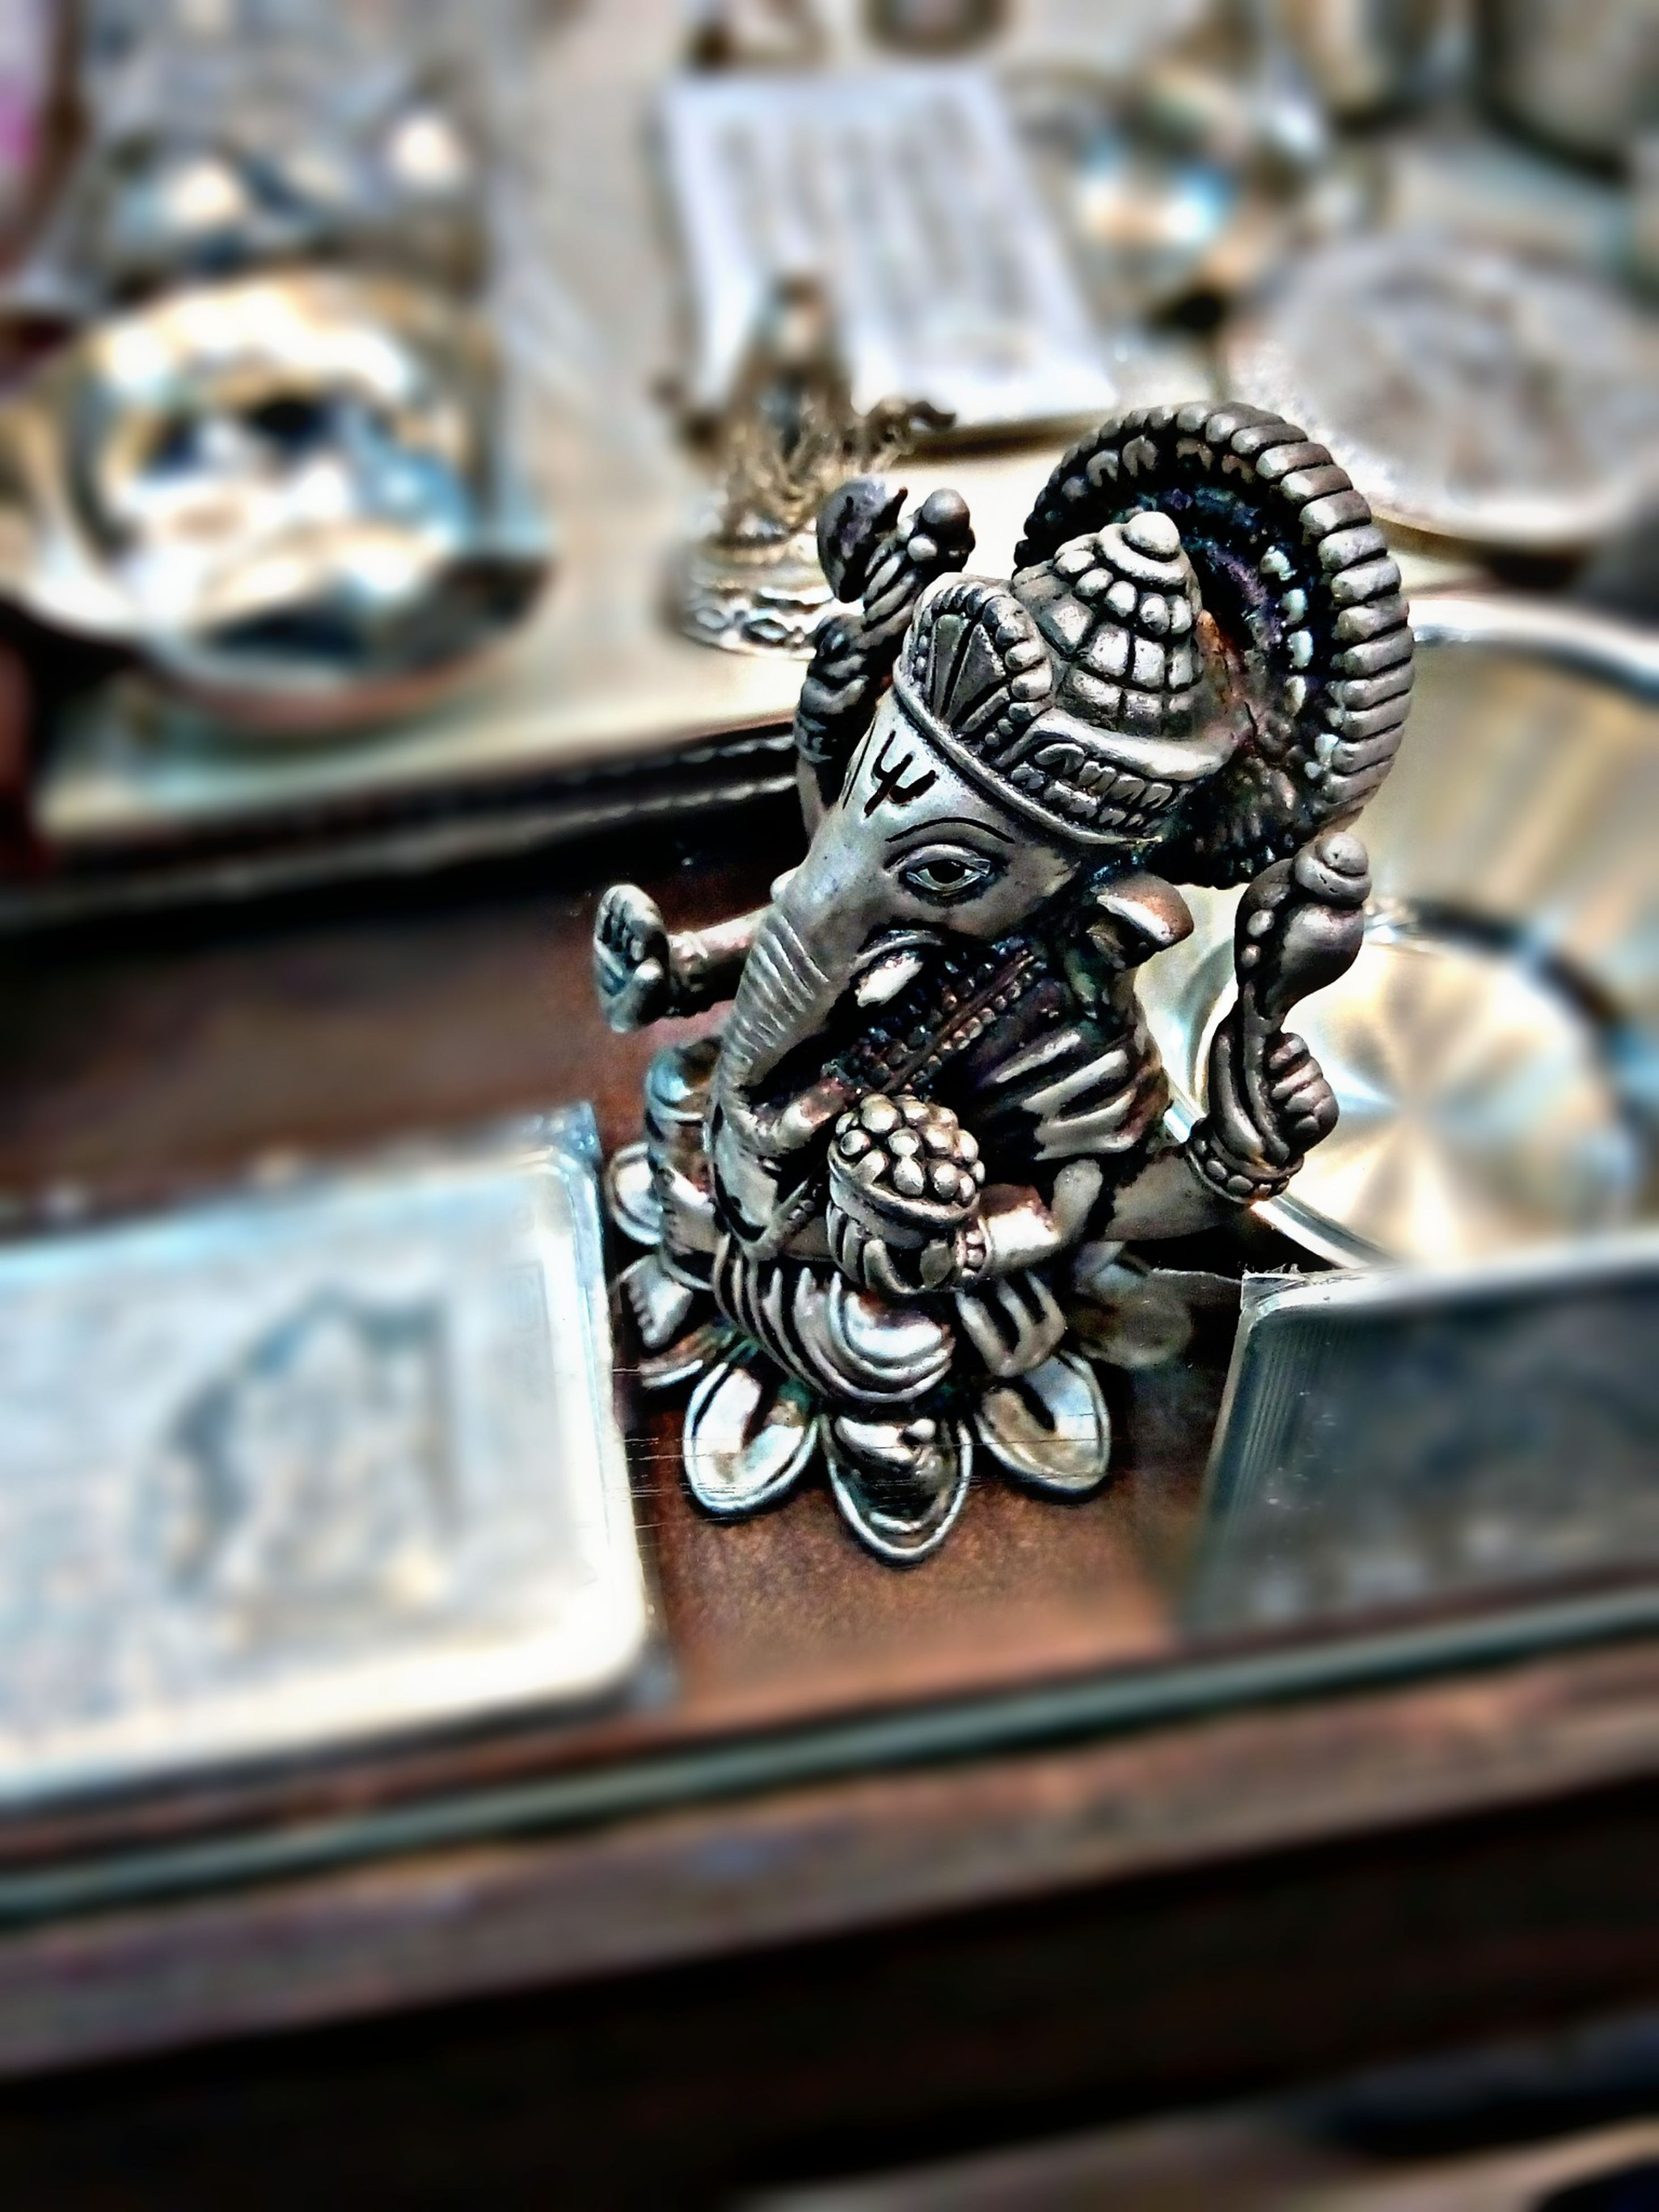 art and craft, art, focus on foreground, indoors, human representation, creativity, close-up, selective focus, animal representation, carving - craft product, sculpture, statue, religion, craft, wood - material, ornate, no people, spirituality, metal